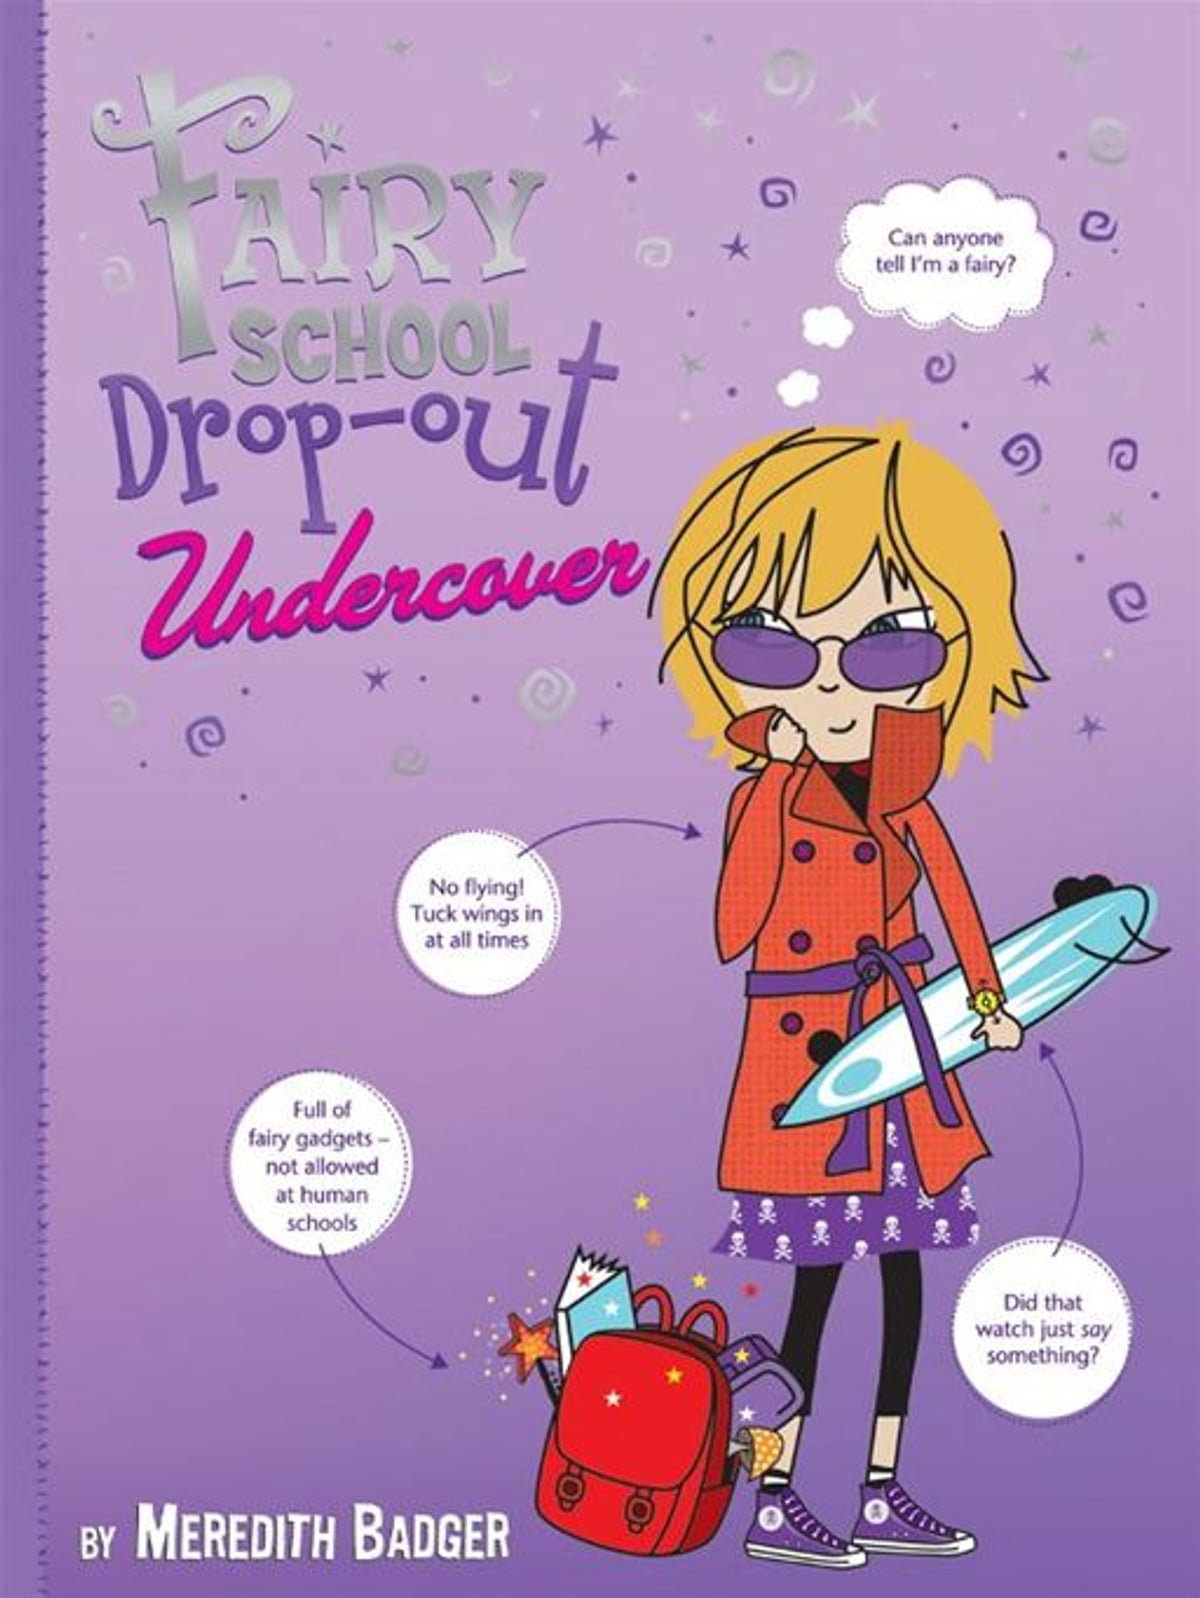 Fairy school drop out undercover ebook by meredith badger fairy school drop out undercover ebook by meredith badger 9781742732978 rakuten kobo fandeluxe Epub